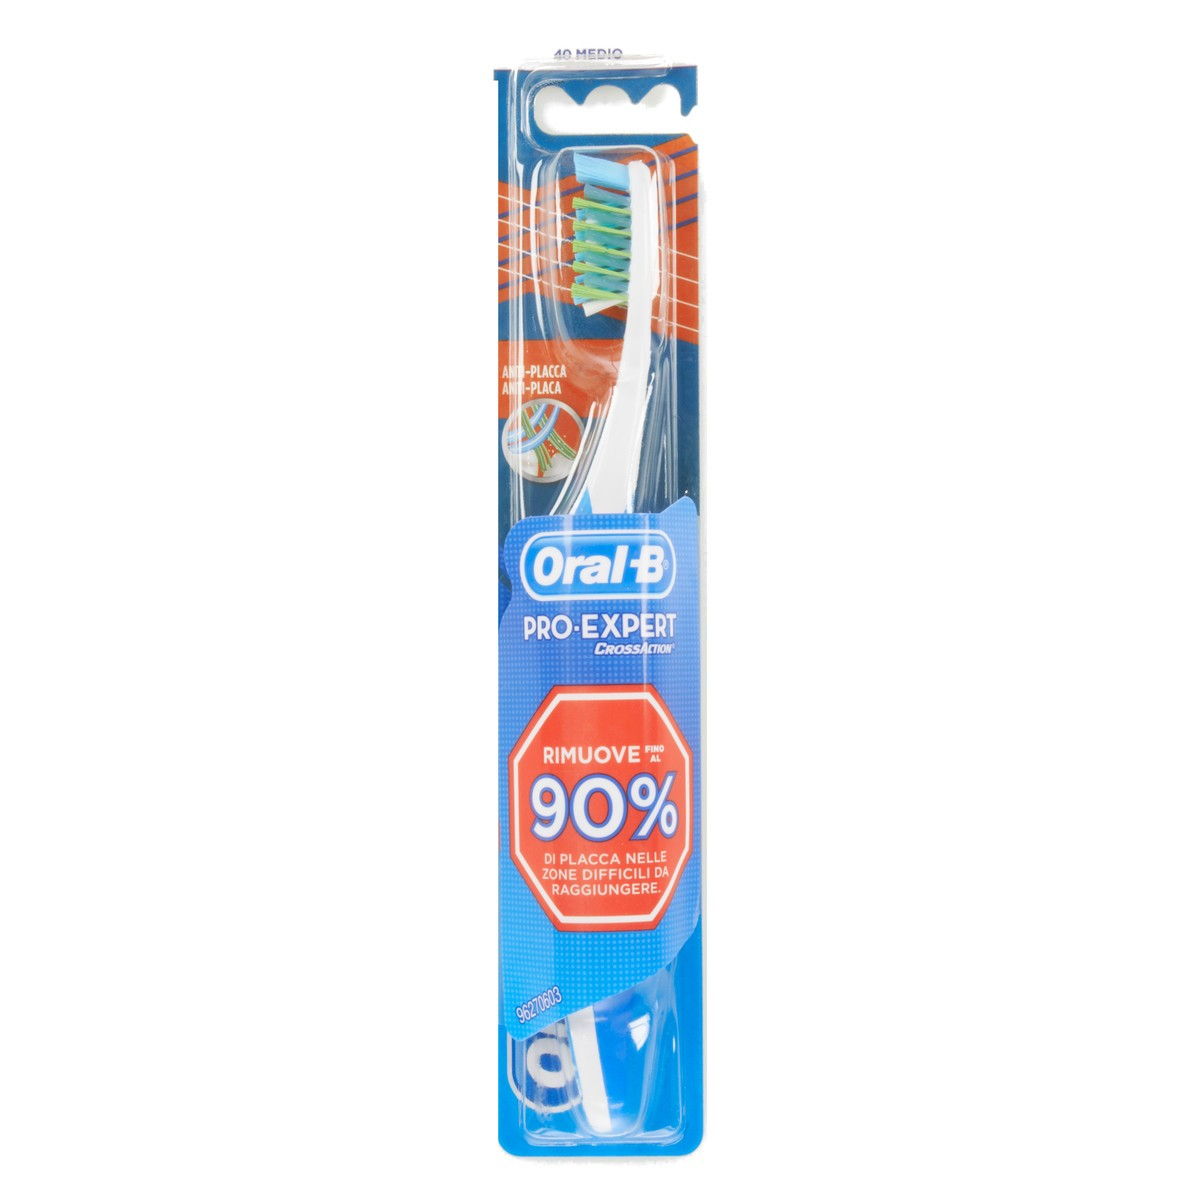 Oral-B Spazzolino Pro-Expert Cross Action